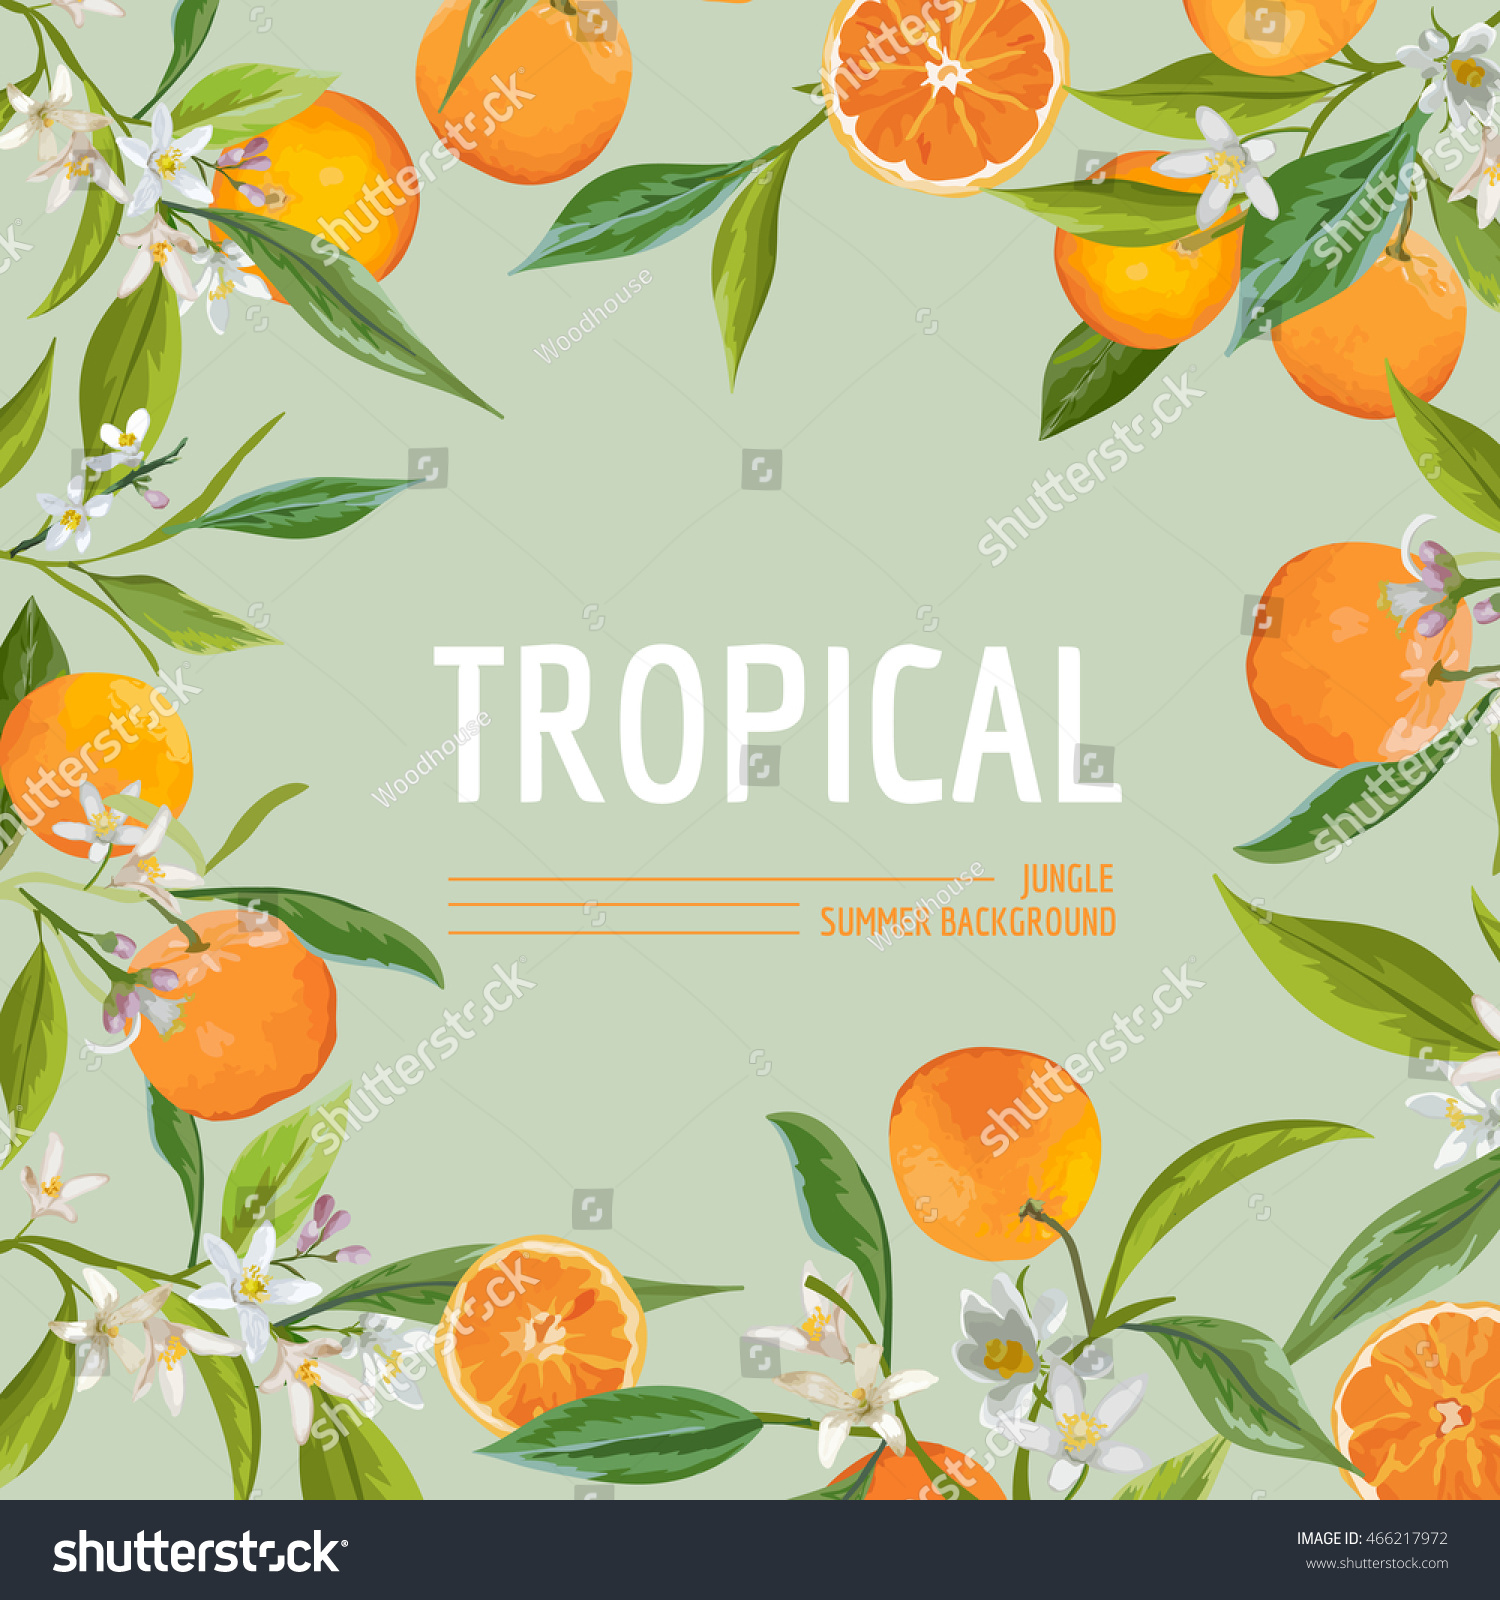 Orange Flowers And Leaves Exotic Graphic Tropical Banner Vector Frame Background